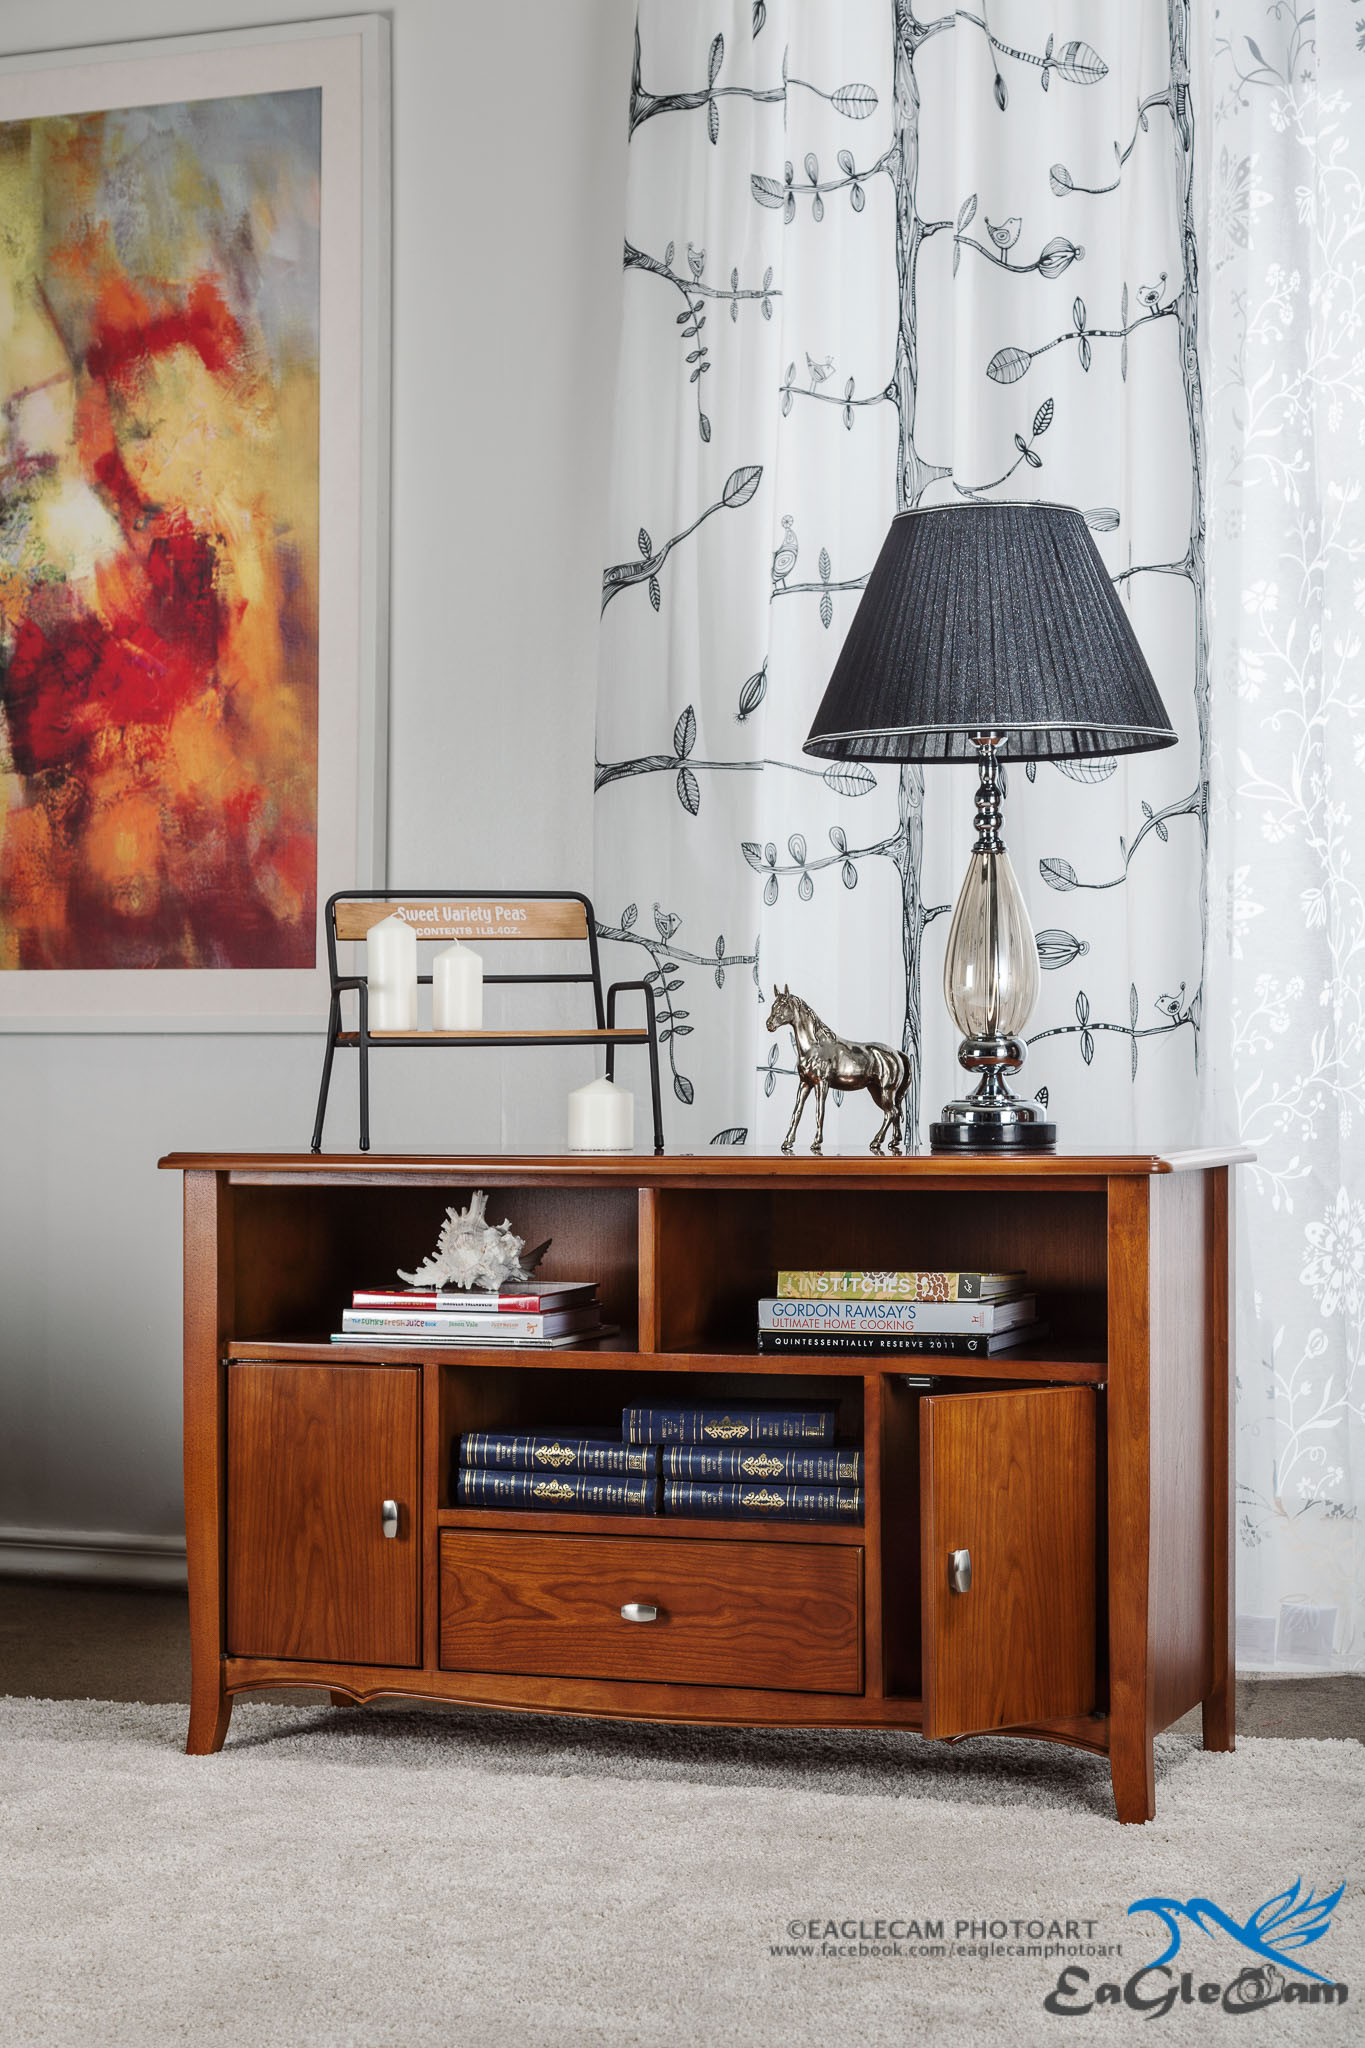 Furniture Photography_14